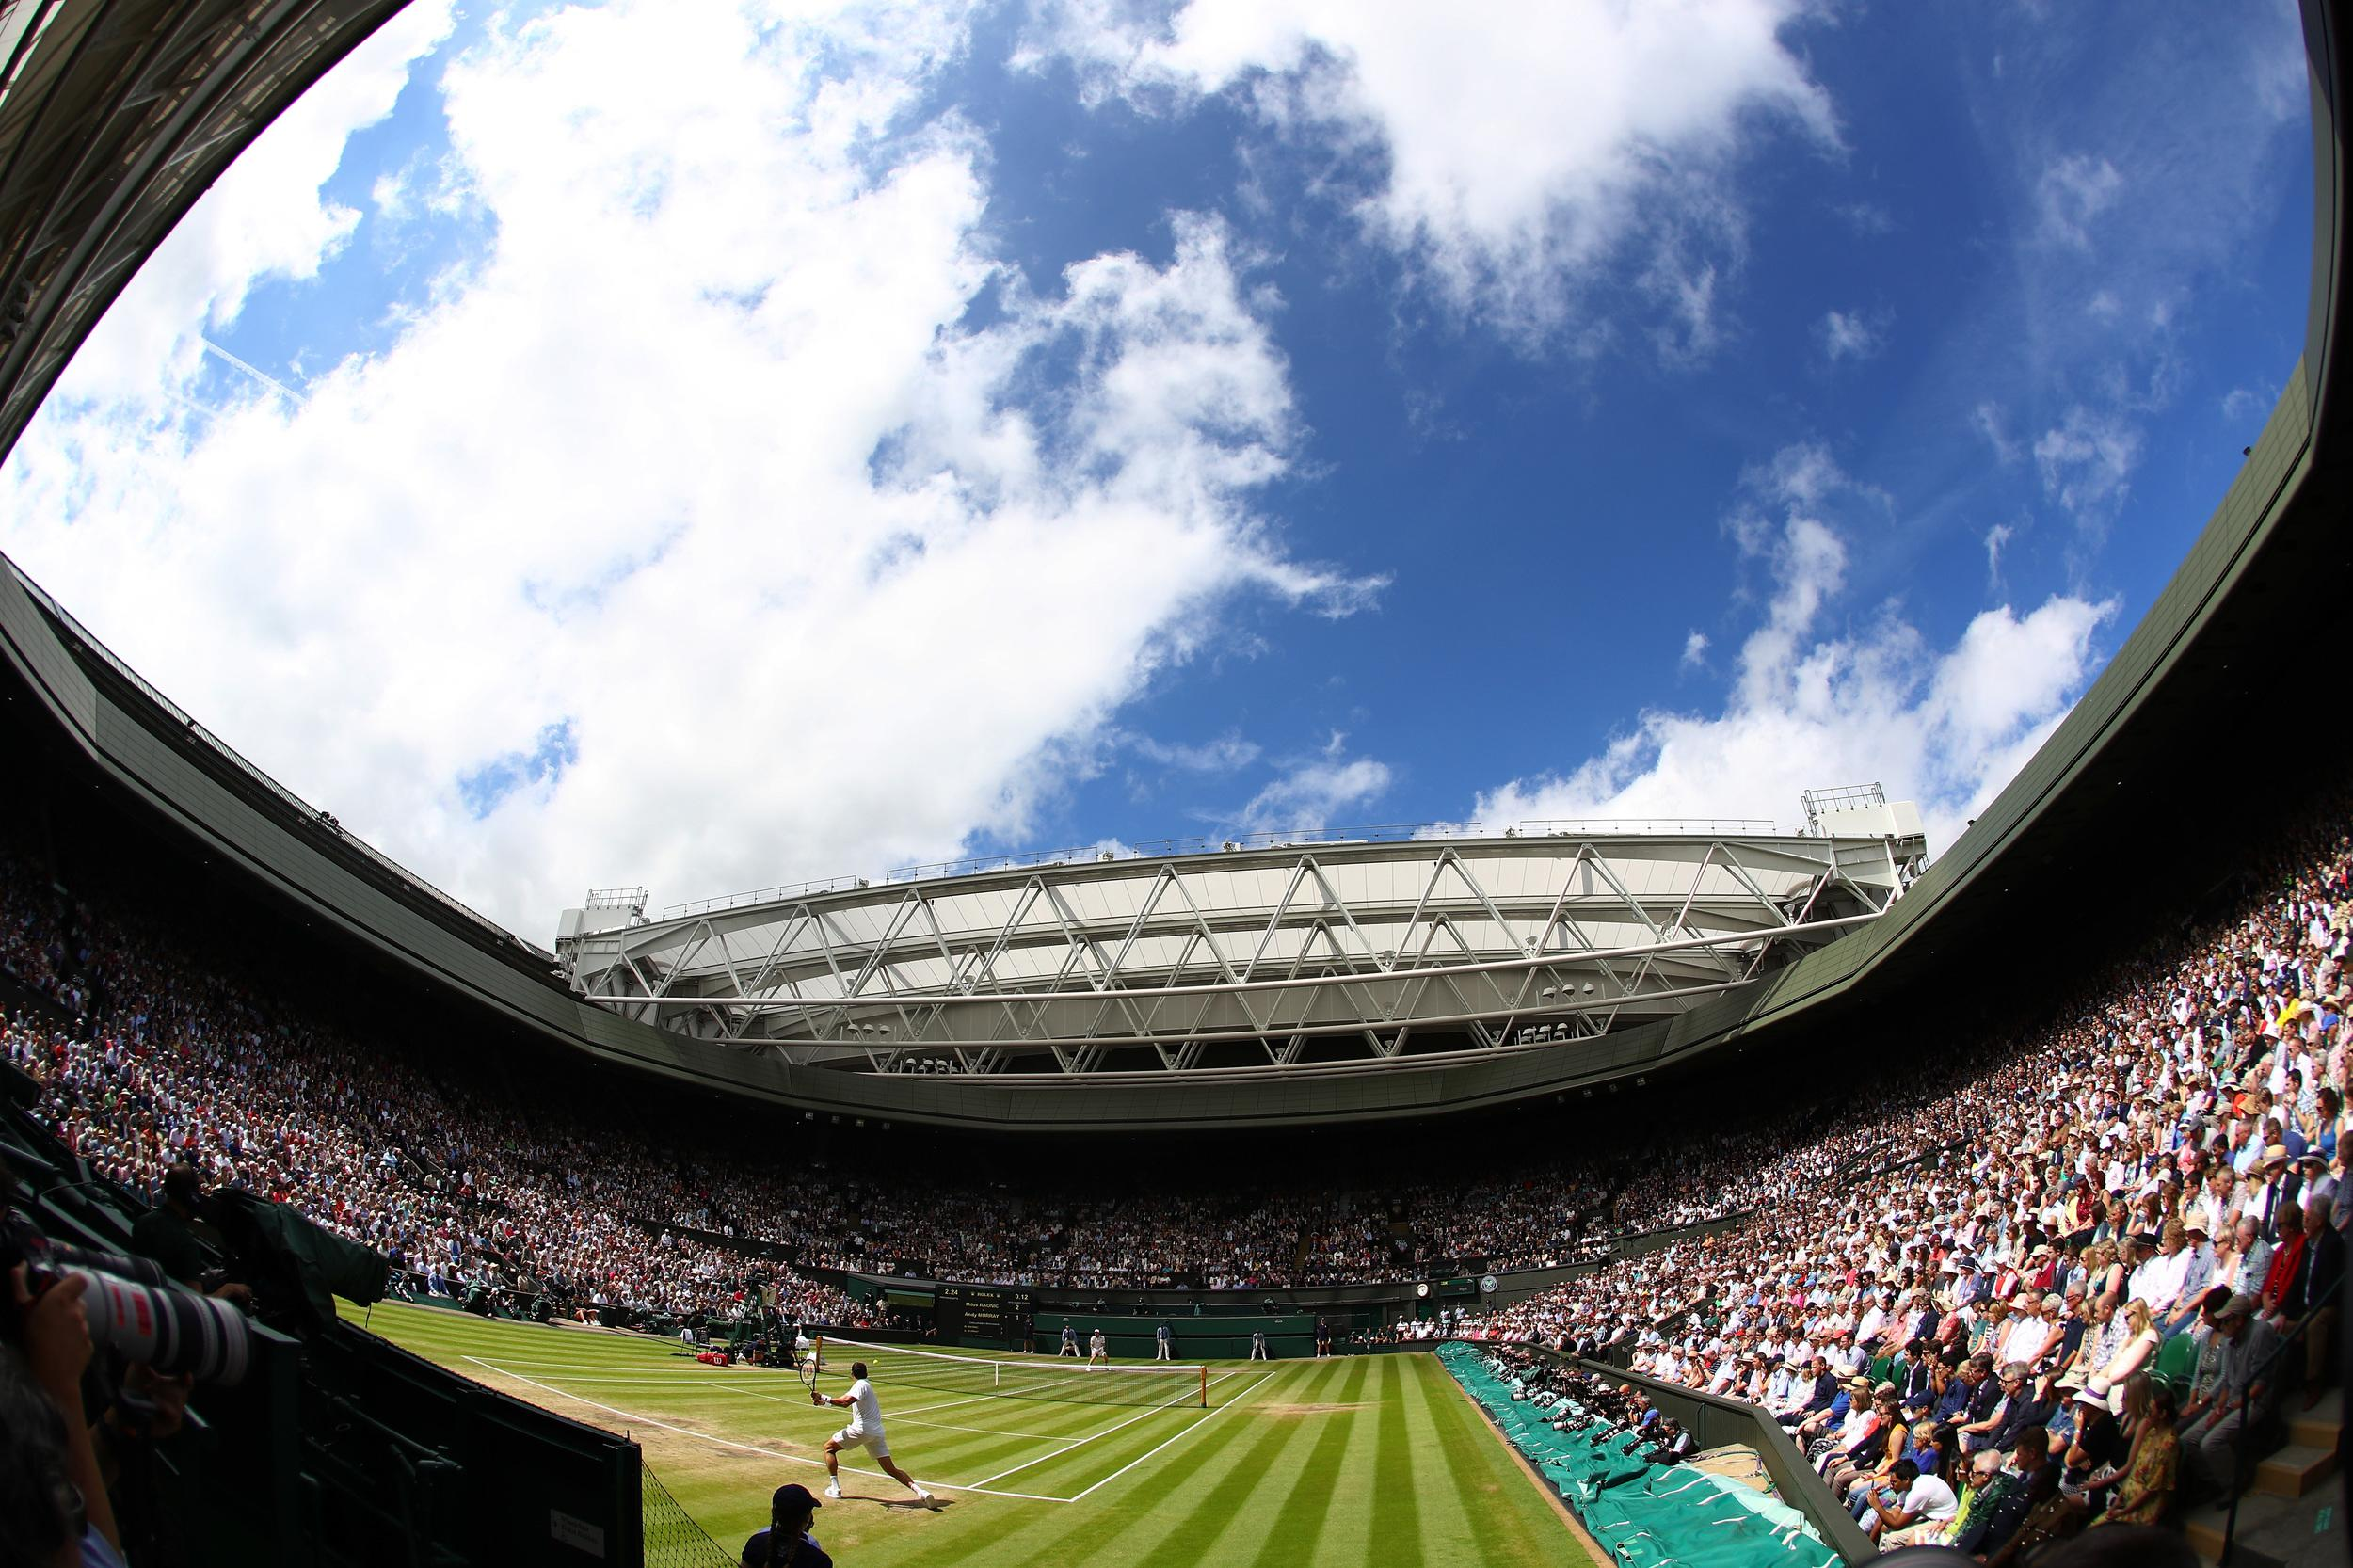 A general view inside Centre Court.